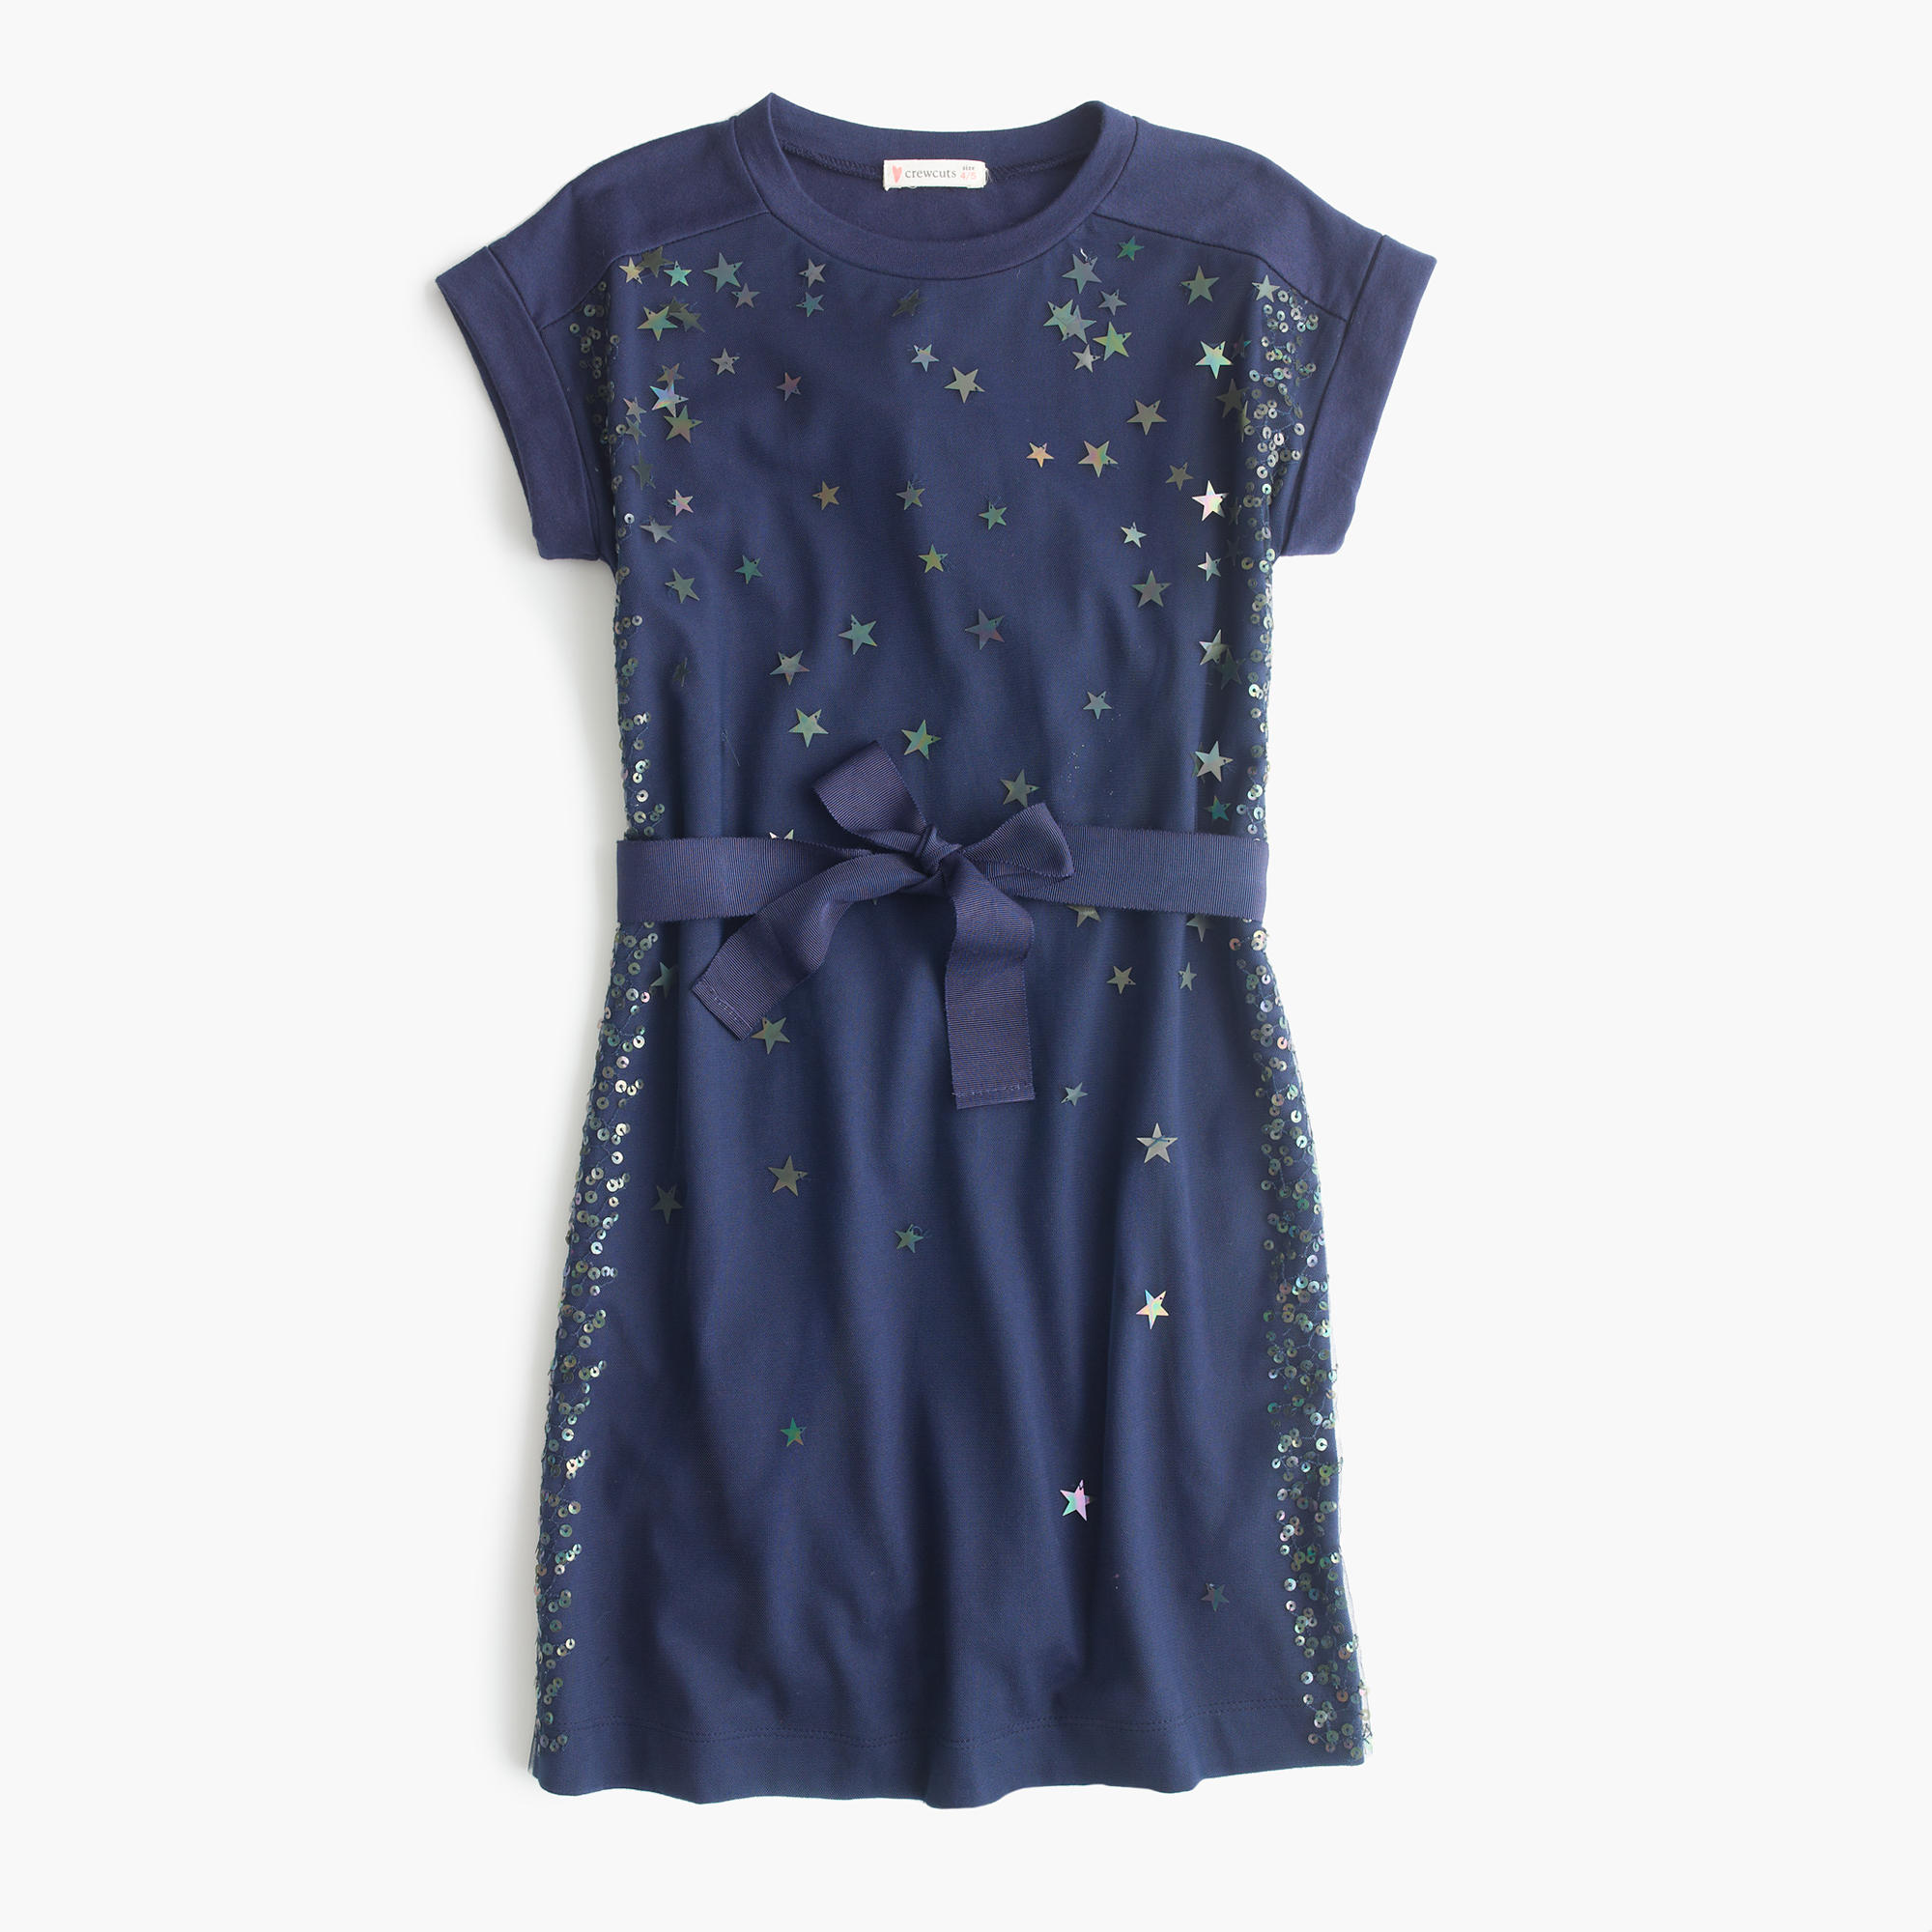 Girls 39 celestial sequin t shirt dress with bow j crew for Girls sequin t shirt